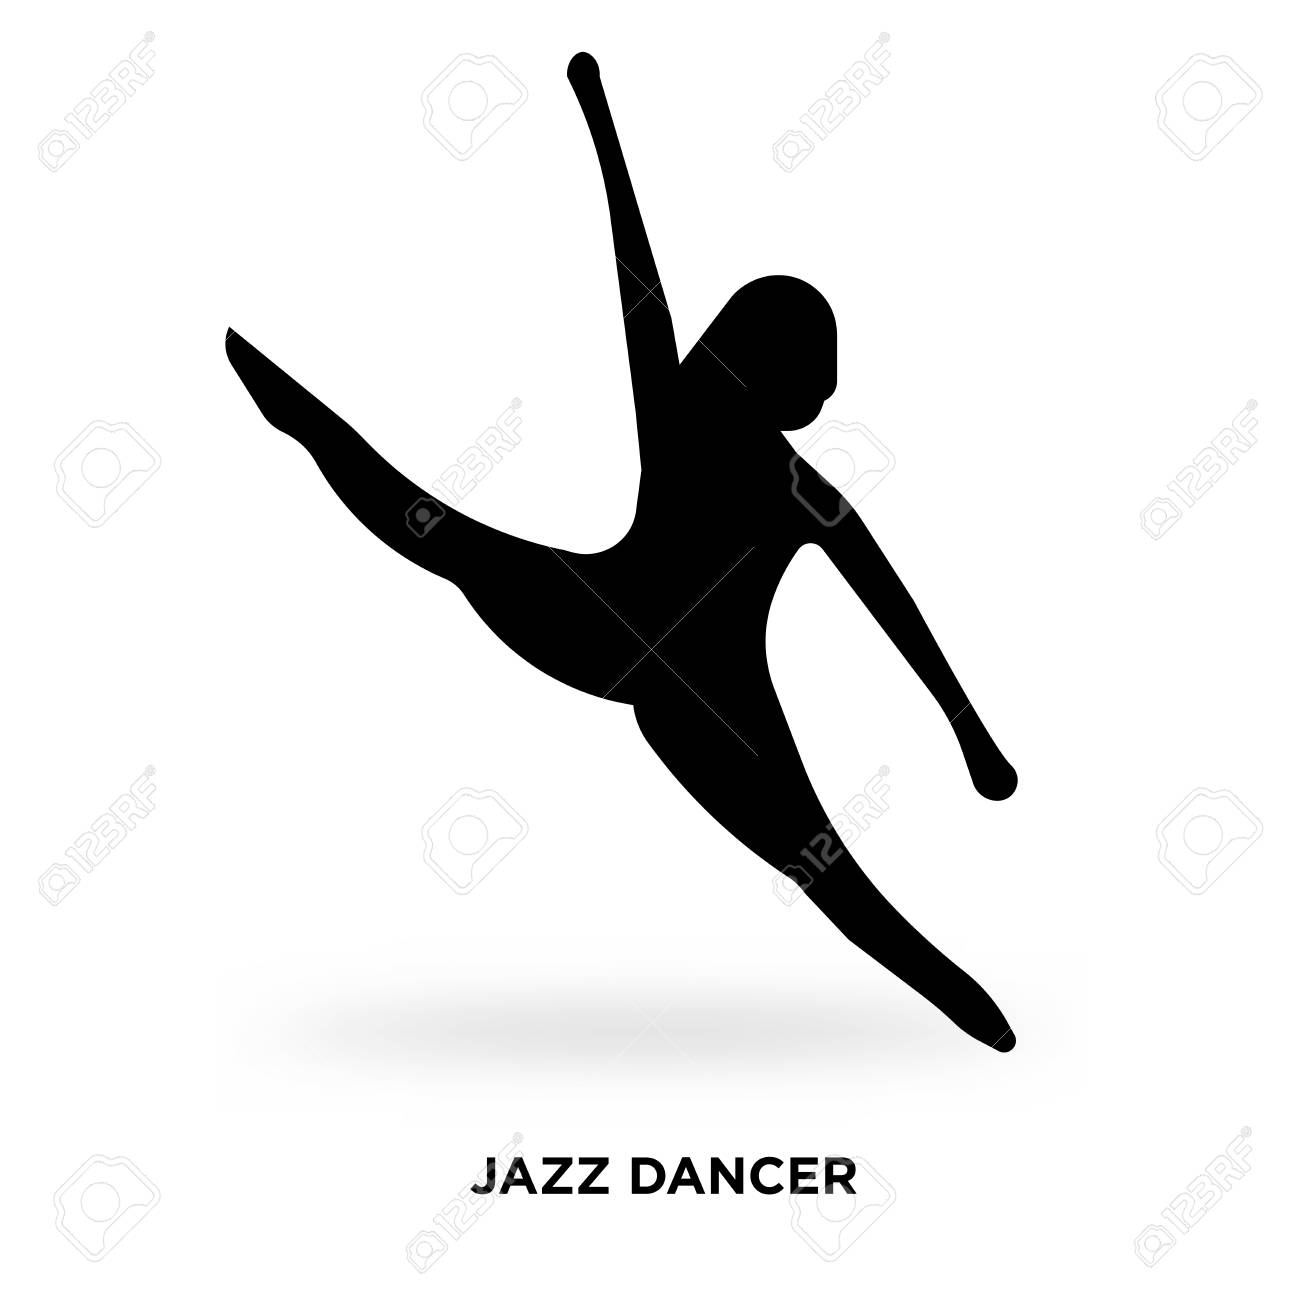 Jazz Dancer Silhouette Vector Illustration Royalty Free Cliparts Vectors And Stock Illustration Image 96221605